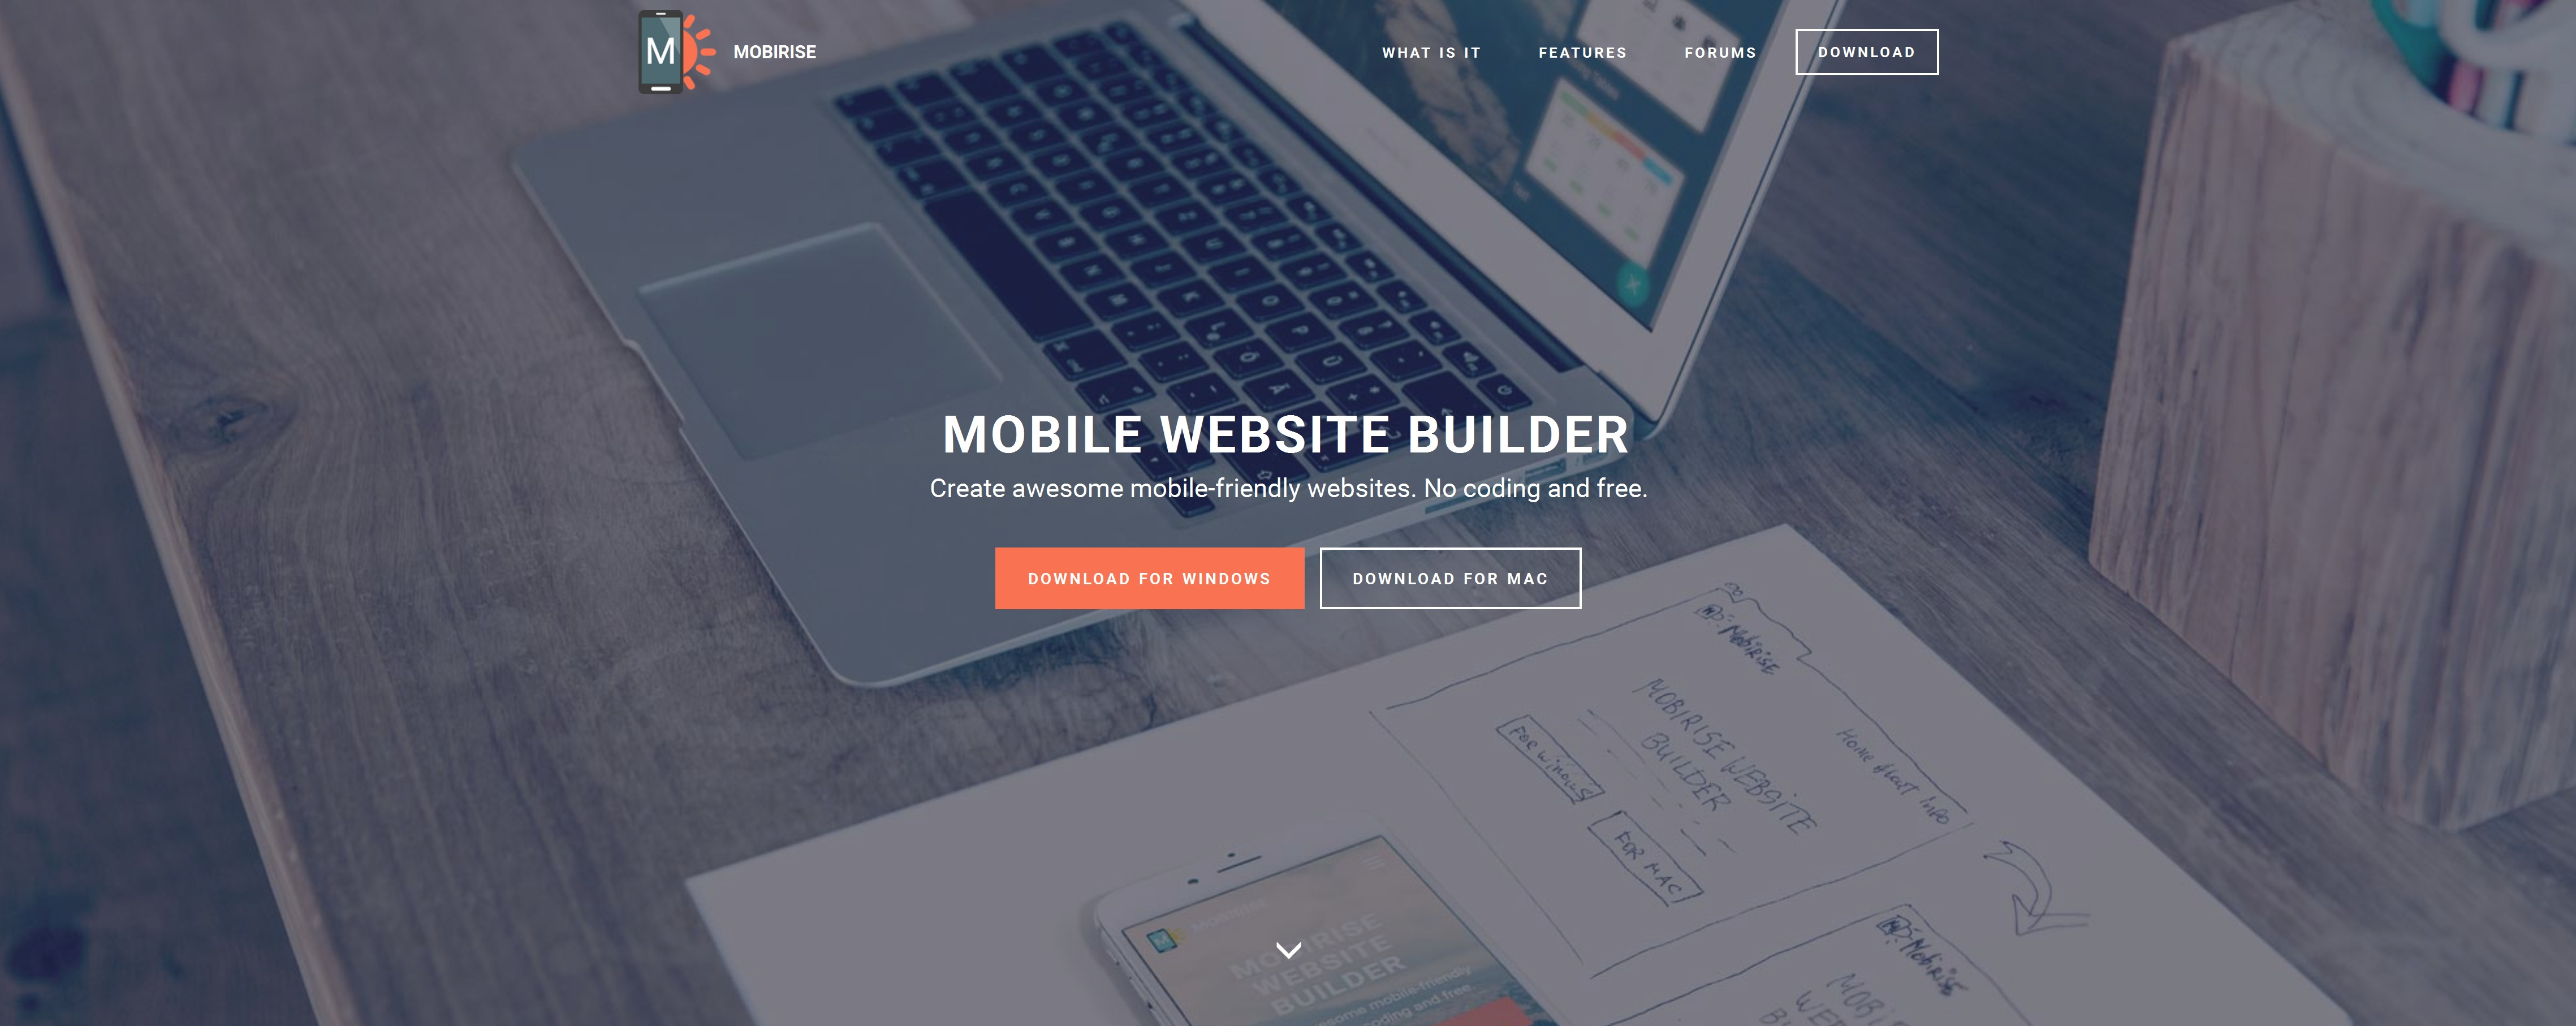 Free Mobile Website Generator Software